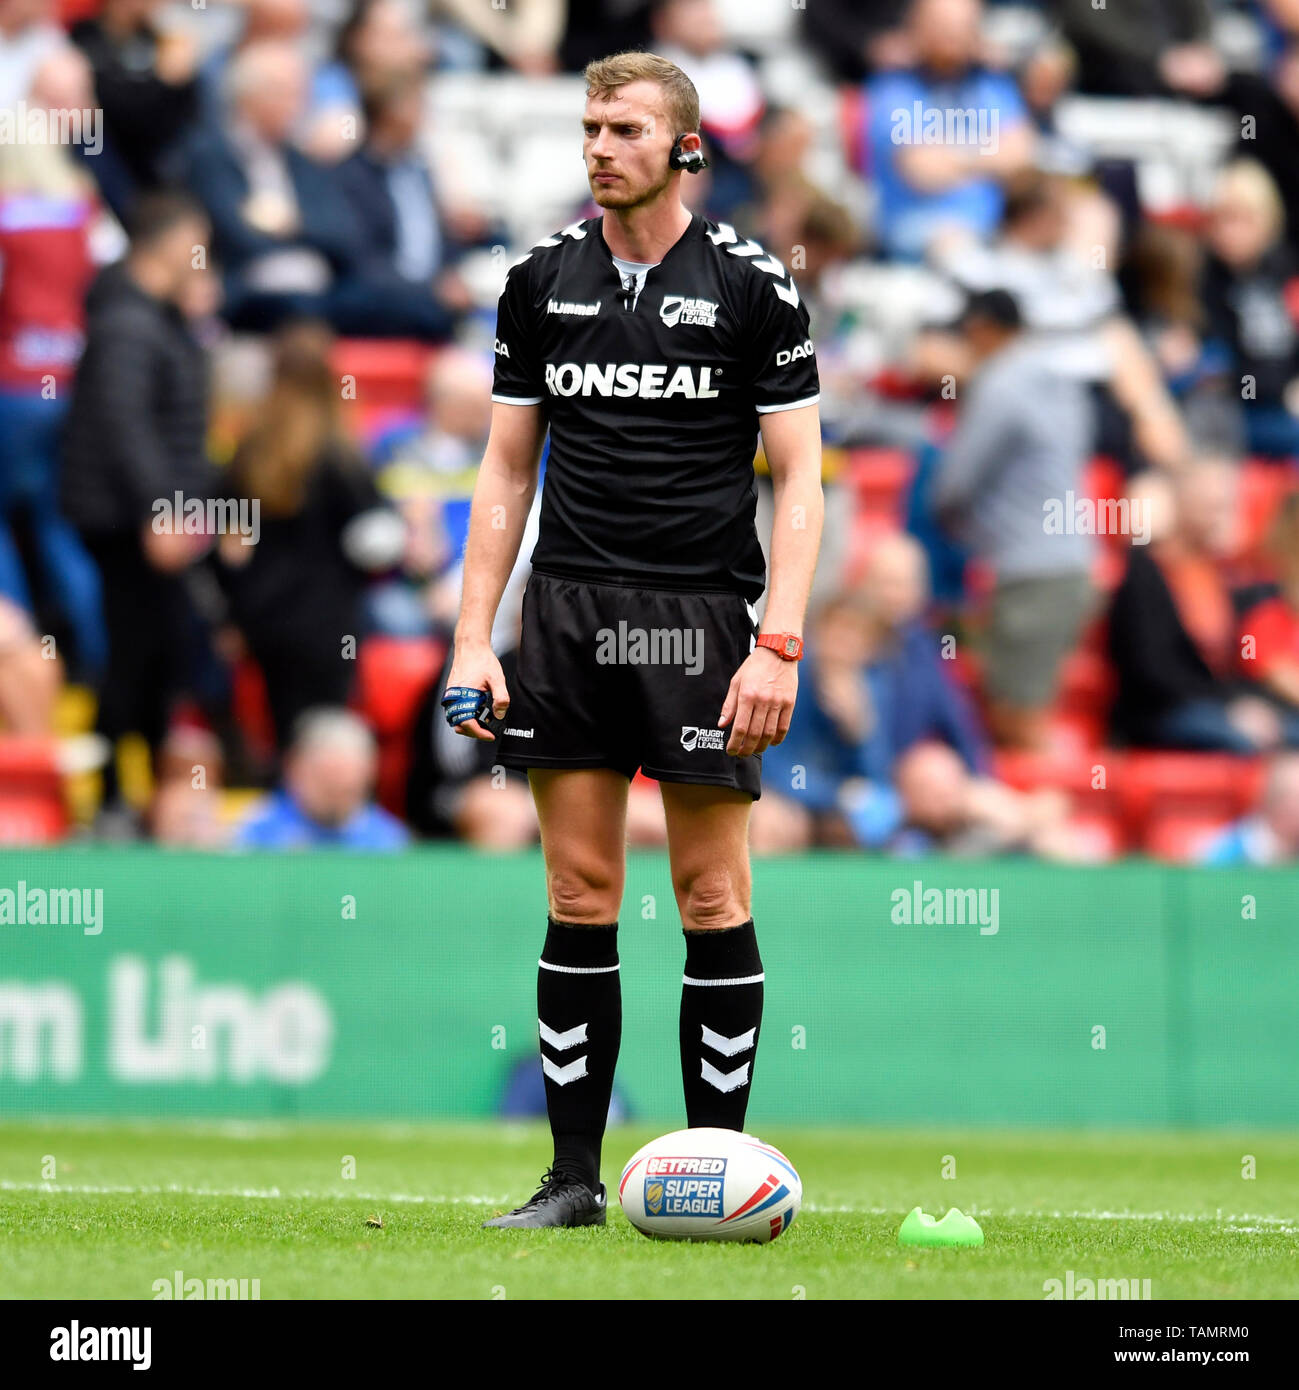 Anfield, Liverpool, UK. 25th May, 2019. Rugby League Dacia Magic Weekend; Scott Mikalauskas, match official for the game between Wakefield Trinity and Catalans Dragons Credit: Action Plus Sports/Alamy Live News - Stock Image